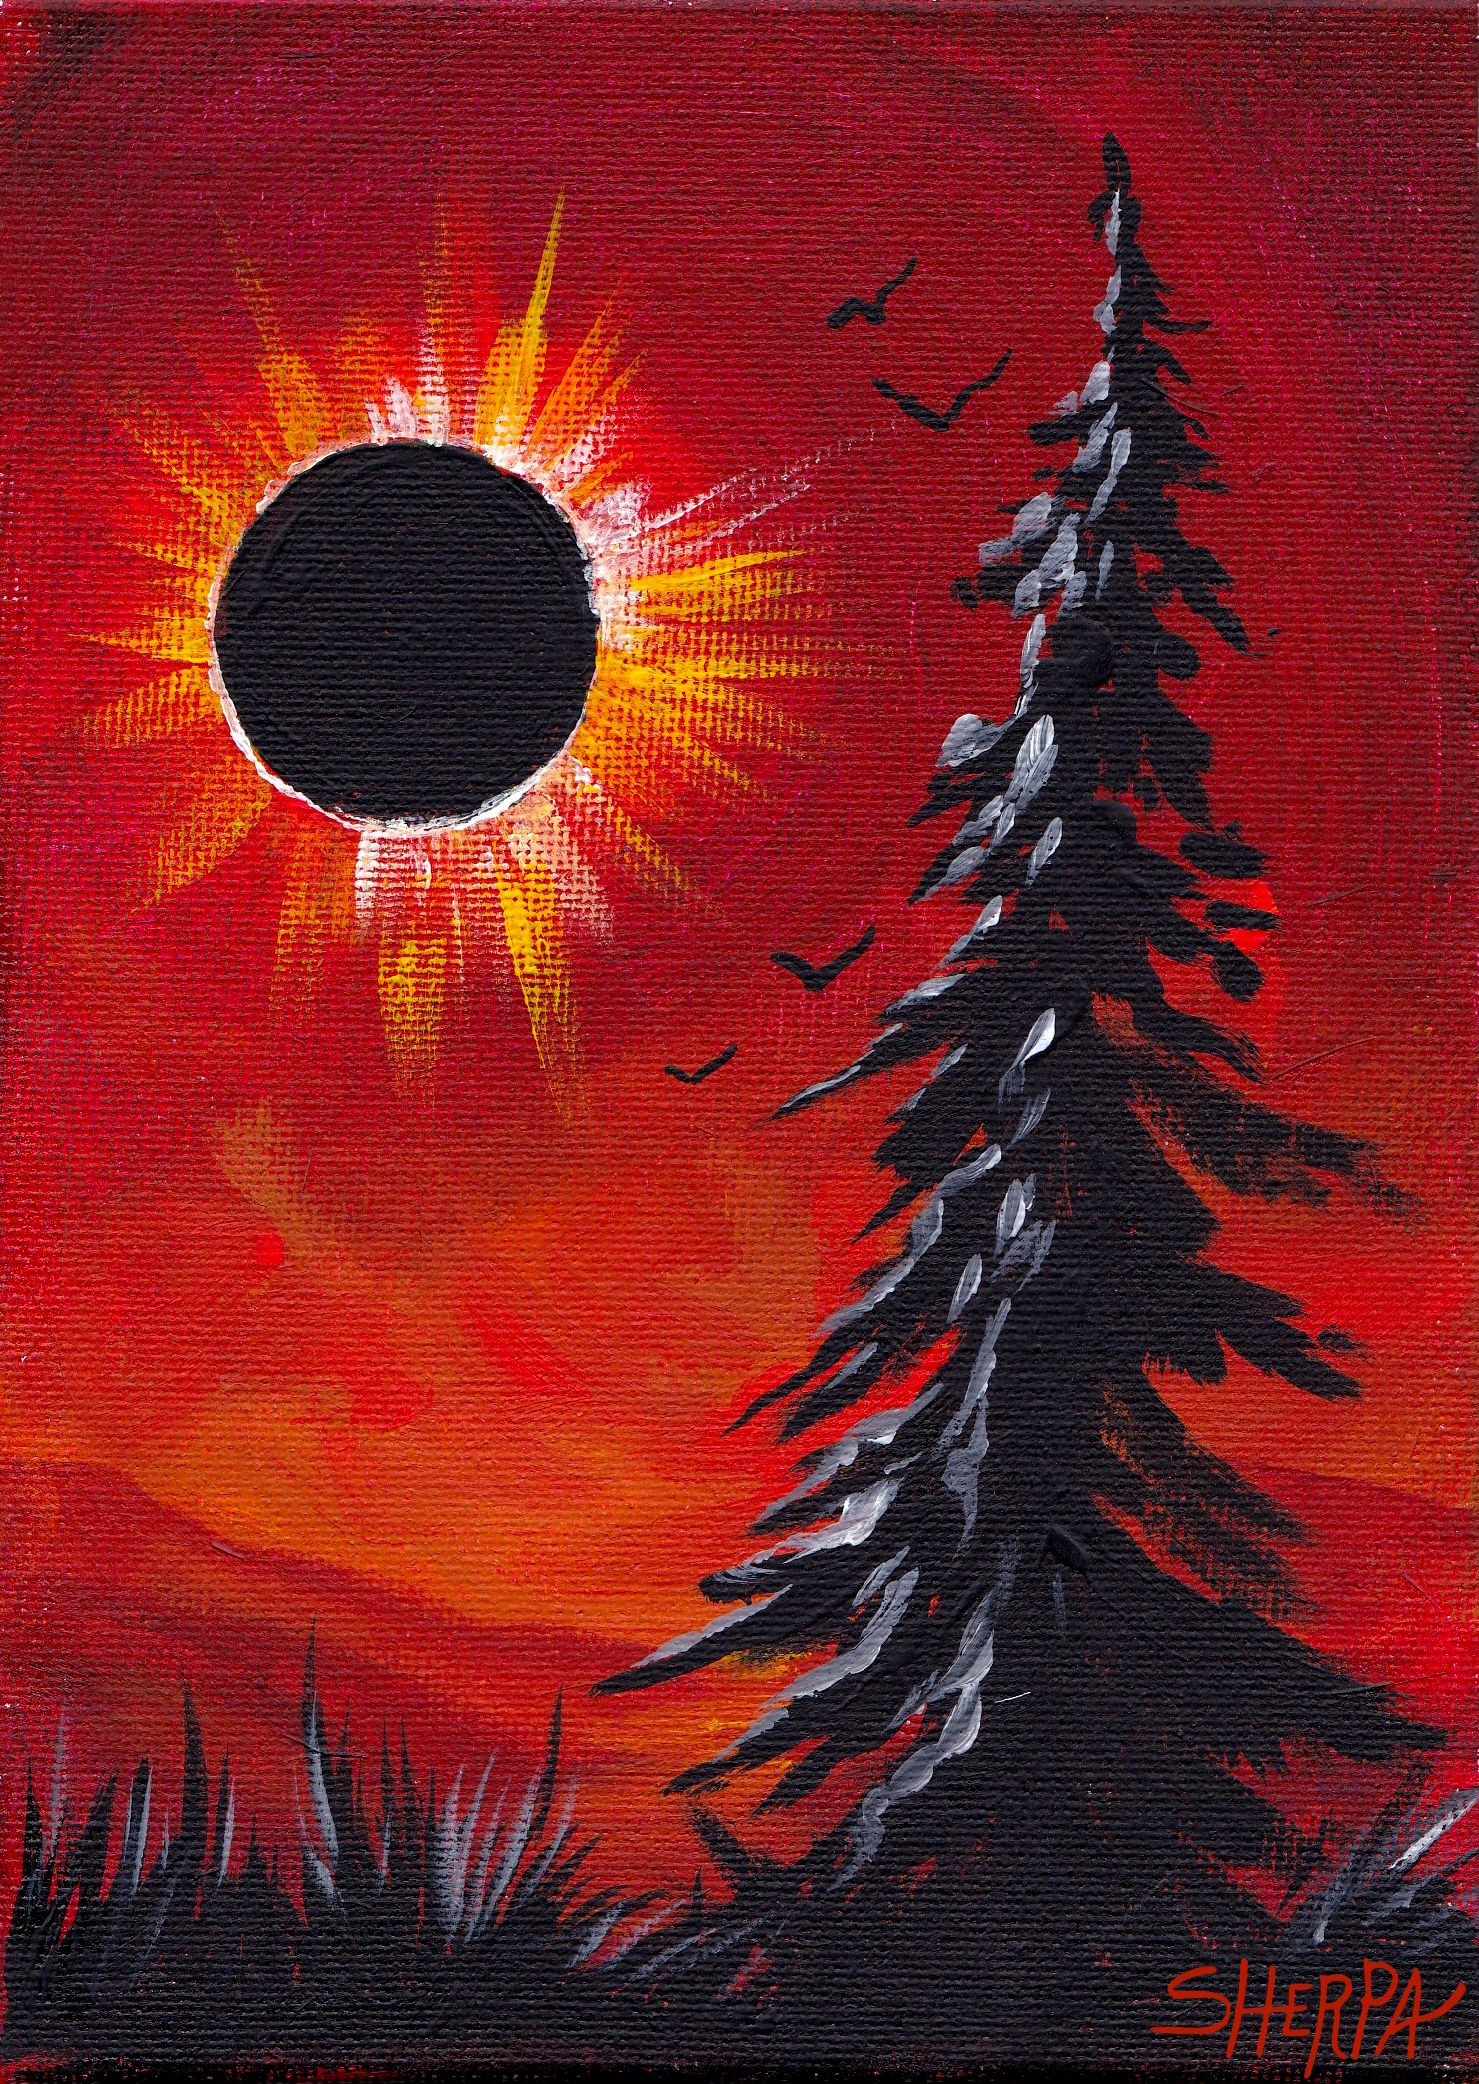 Dark Pine Eclipse Painting Acrylic on Canvas by The Art Sherpa